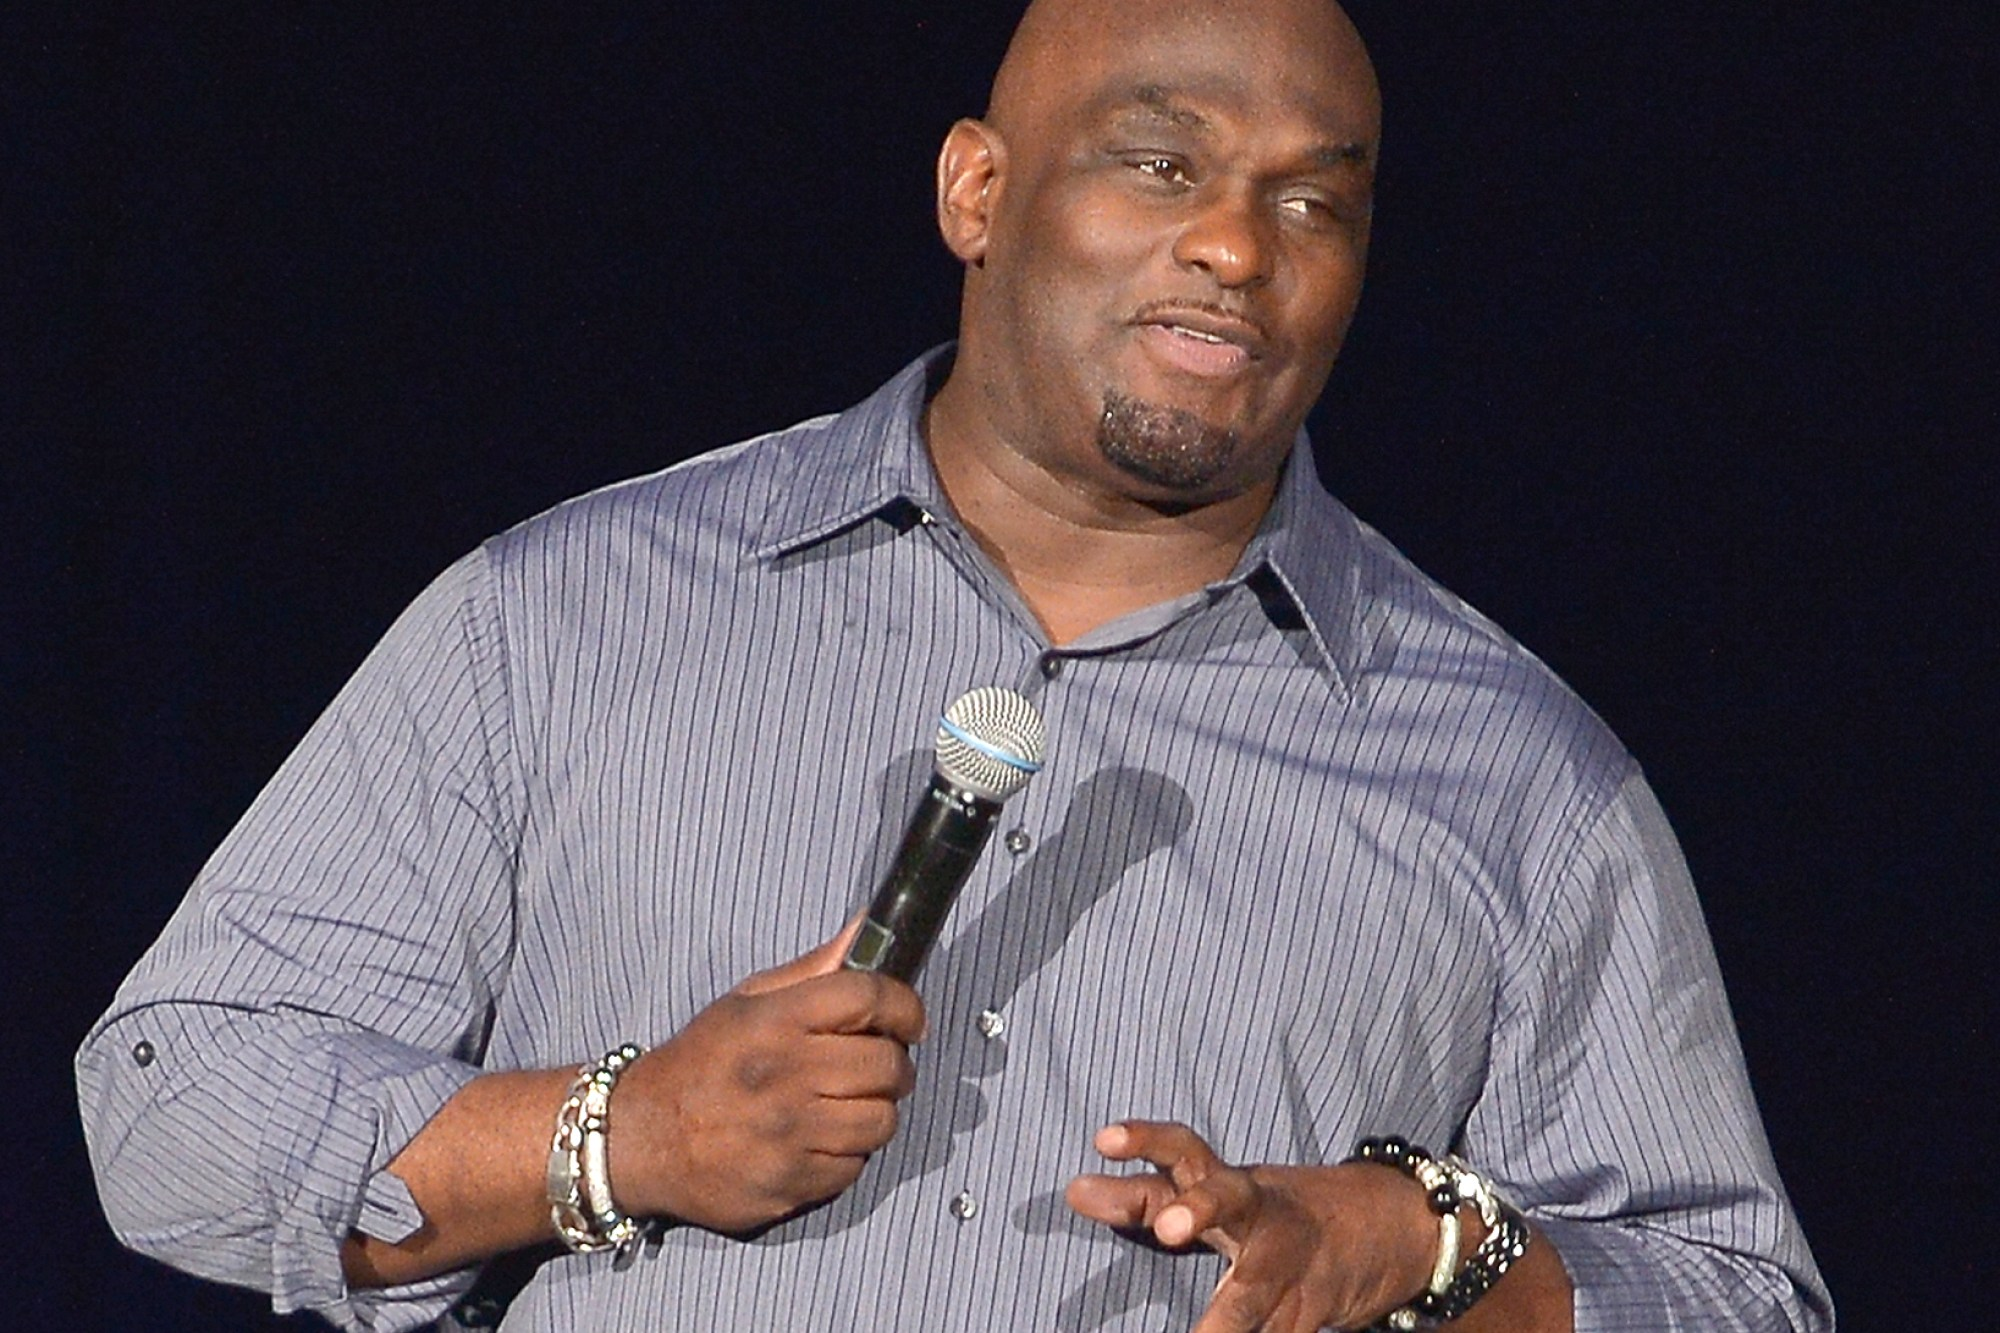 90 S Sitcom Star Tommy Tommy Ford Remembered 1964 2016 Reel Urban News